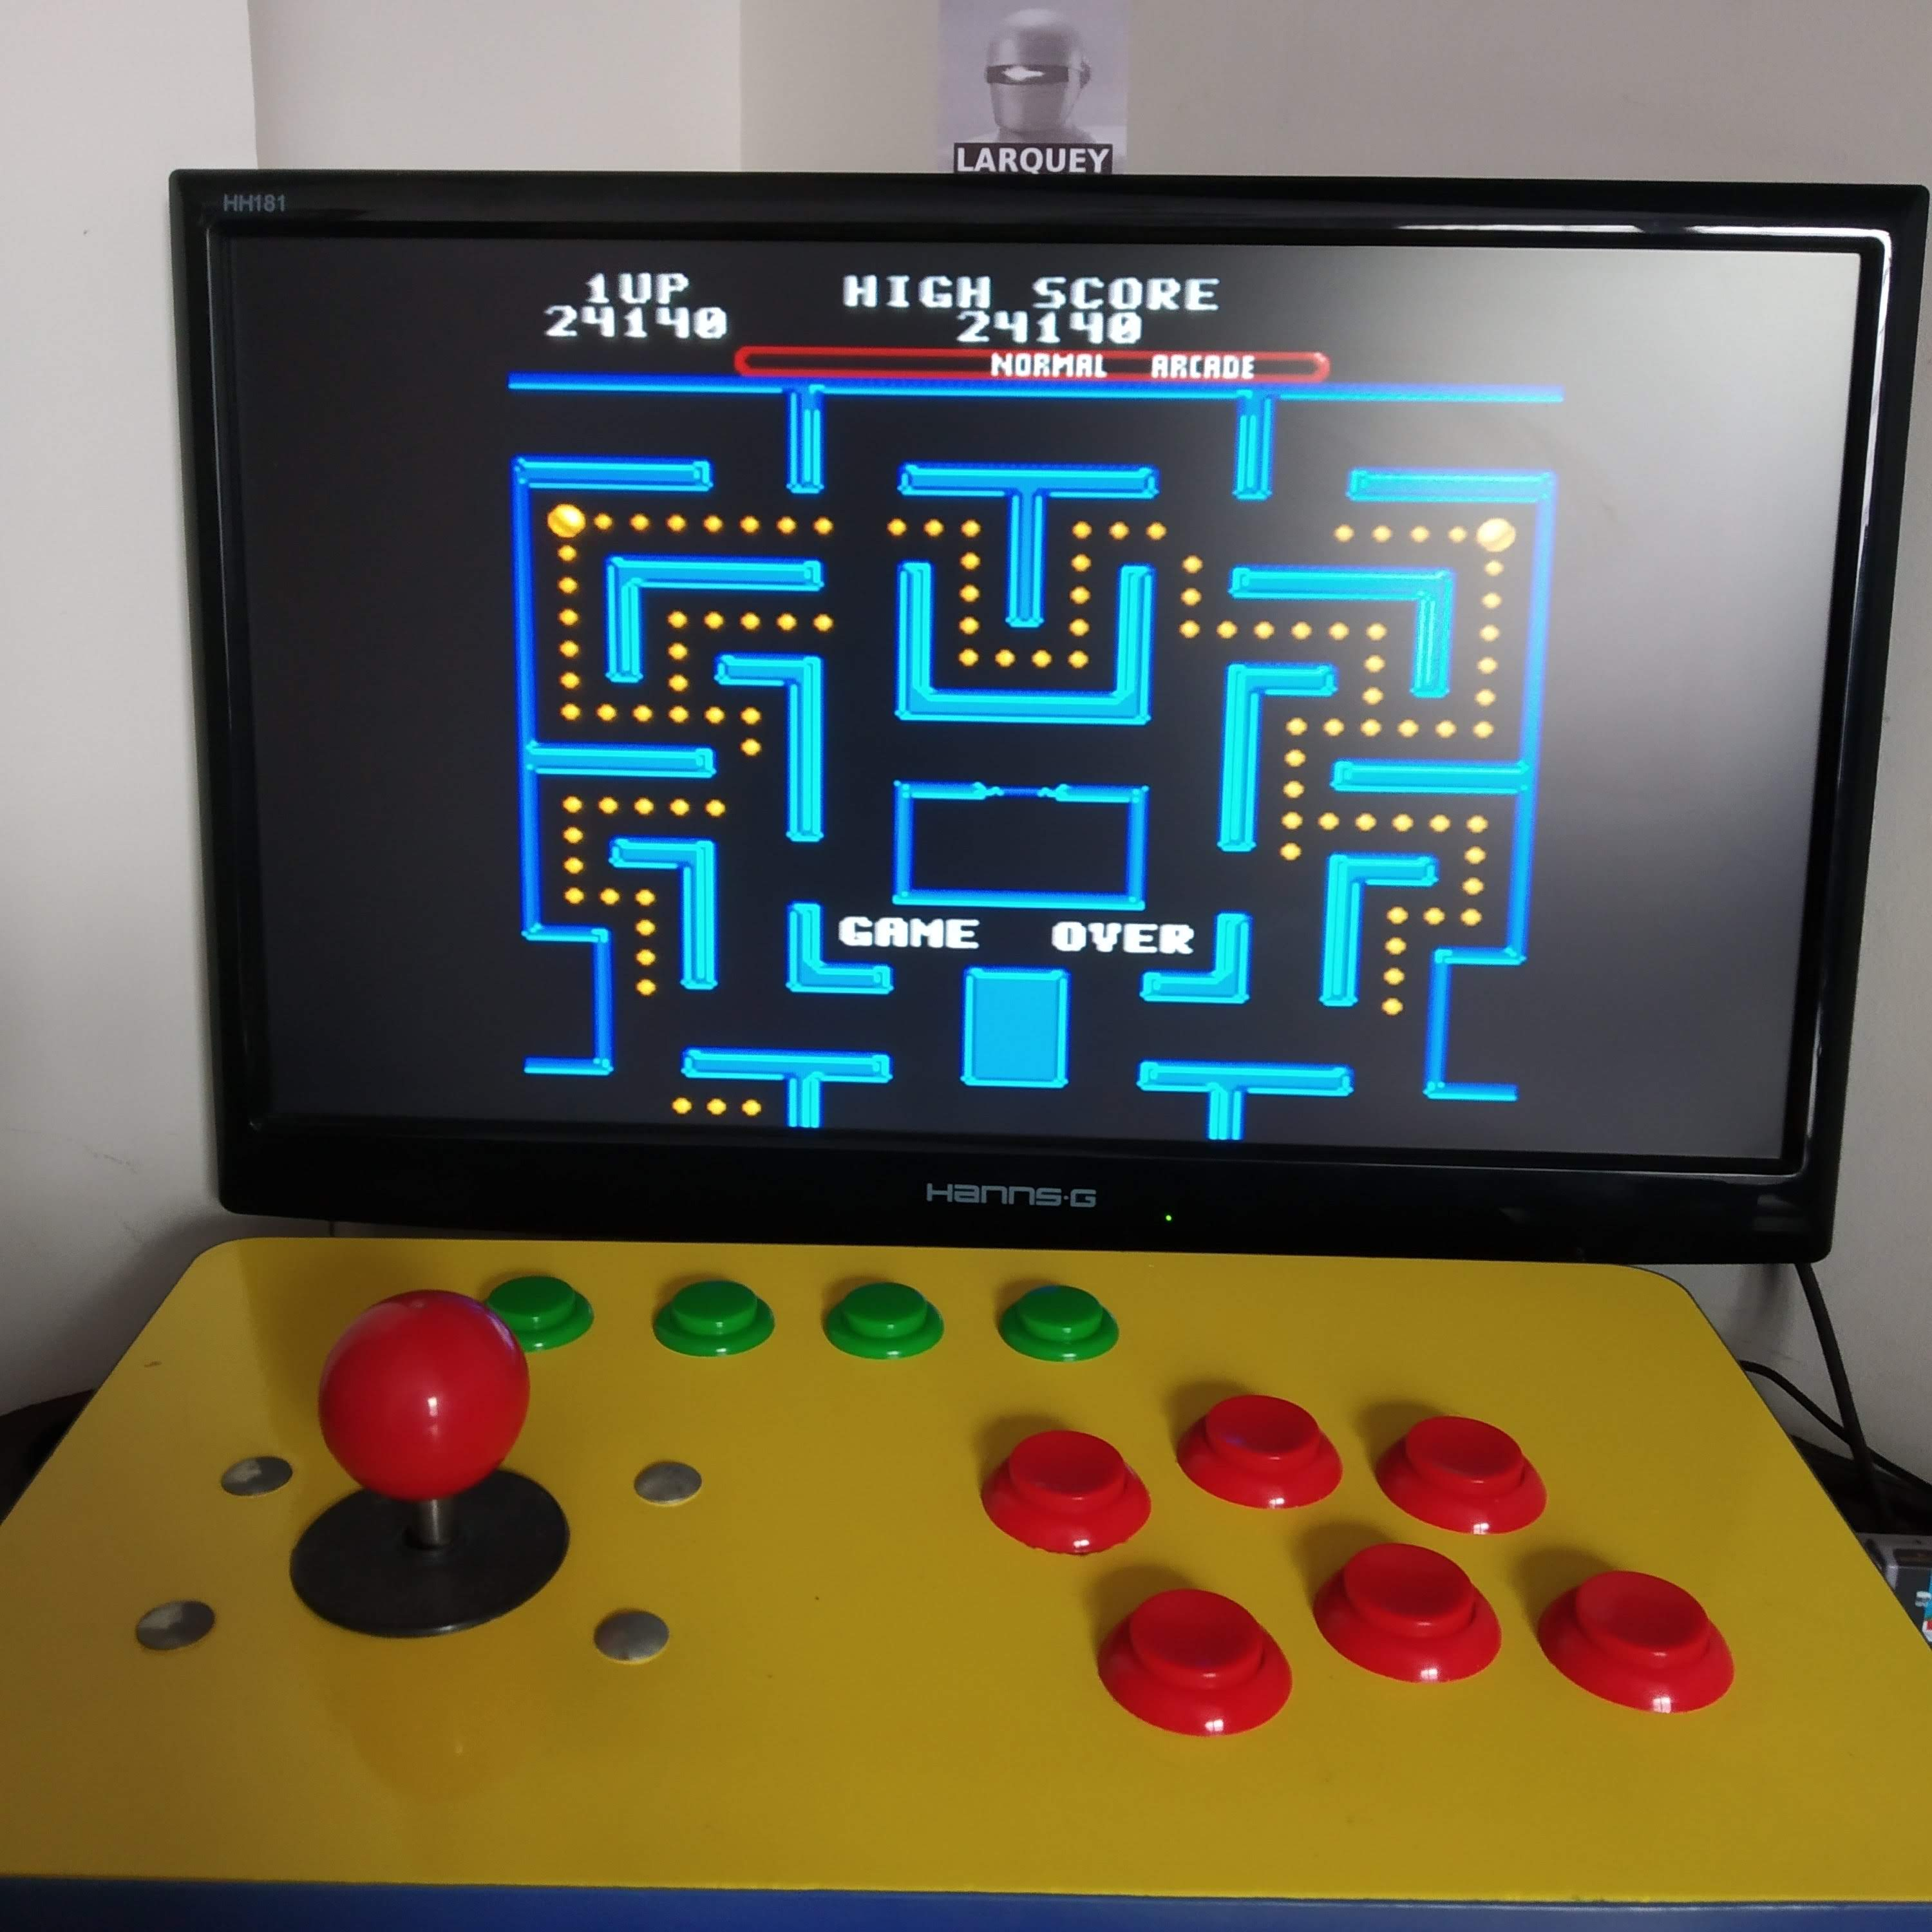 Larquey: Ms. Pac-Man [Off/Normal/Arcade/Level 2 Start] (SNES/Super Famicom Emulated) 24,140 points on 2020-08-16 08:33:18